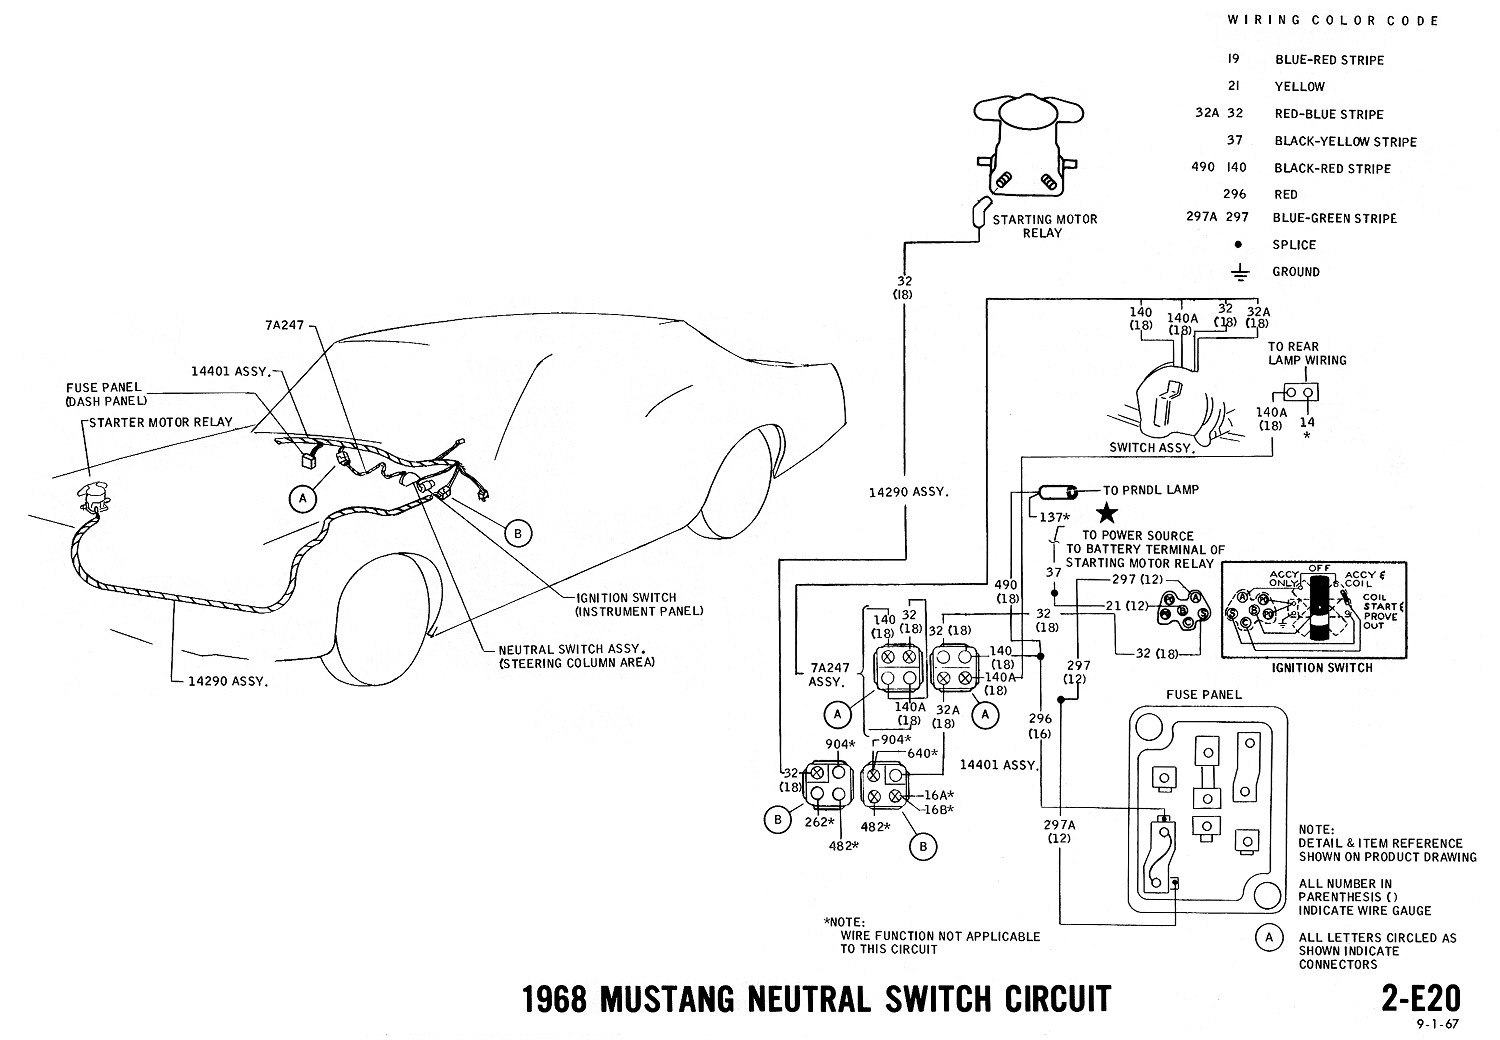 [DIAGRAM_5NL]  1968 Mustang Neutral Safety Switch Wiring Diagram | Wiring Diagram | 1966 Ford Neutral Safety Switch Wiring |  | Wiring Diagram - AutoScout24